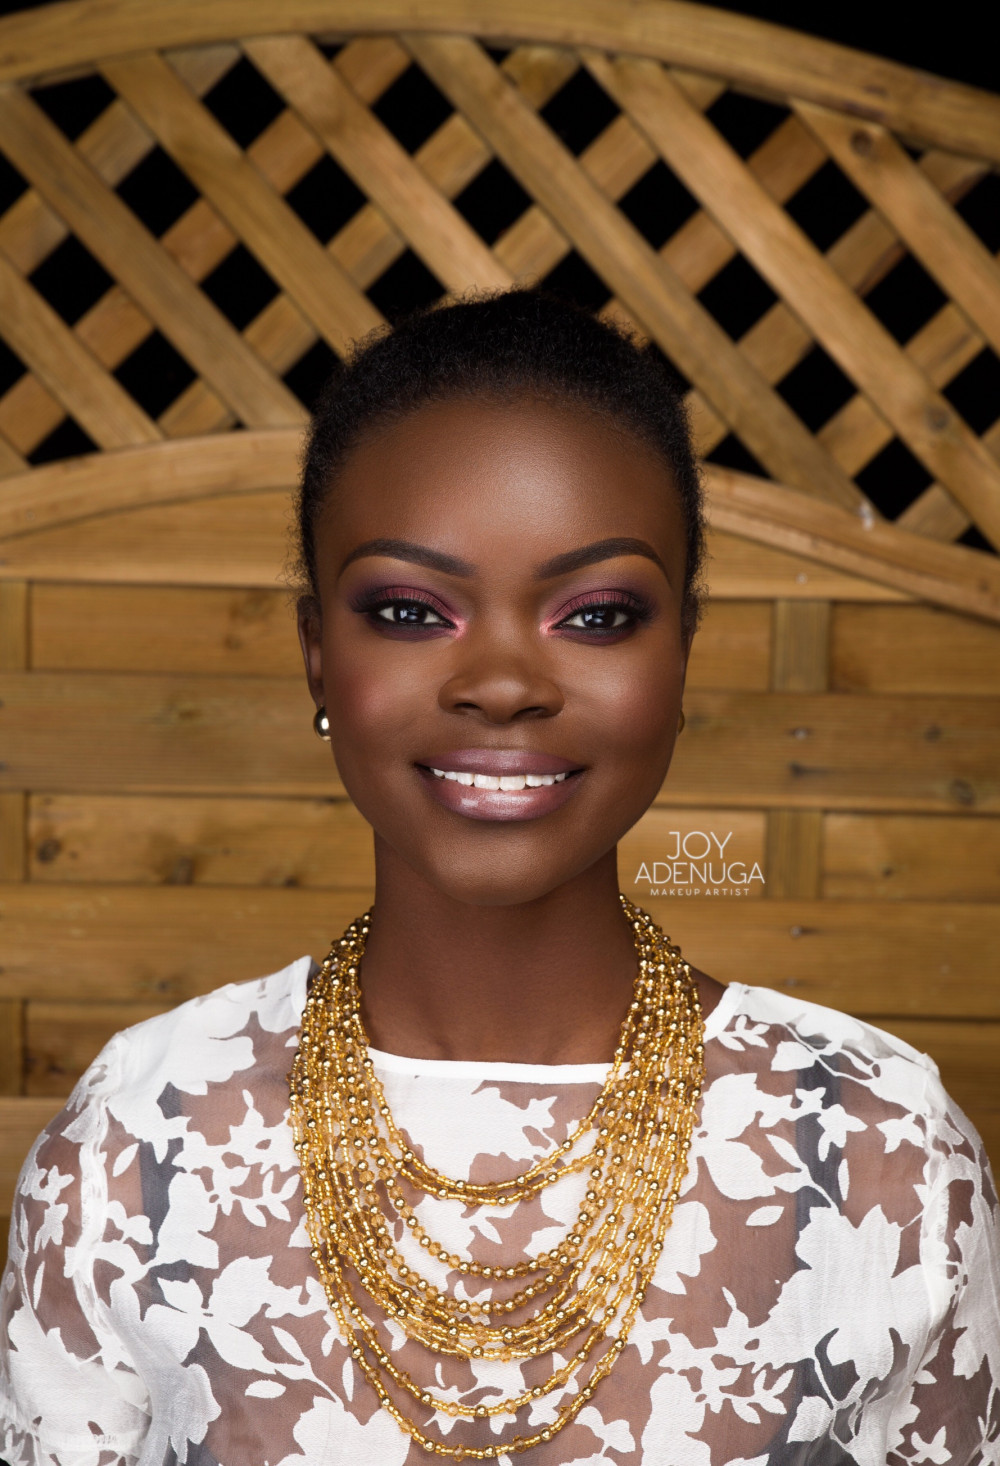 joy-adenuga-bridal-makeup-inspiration-shoot_image3-1